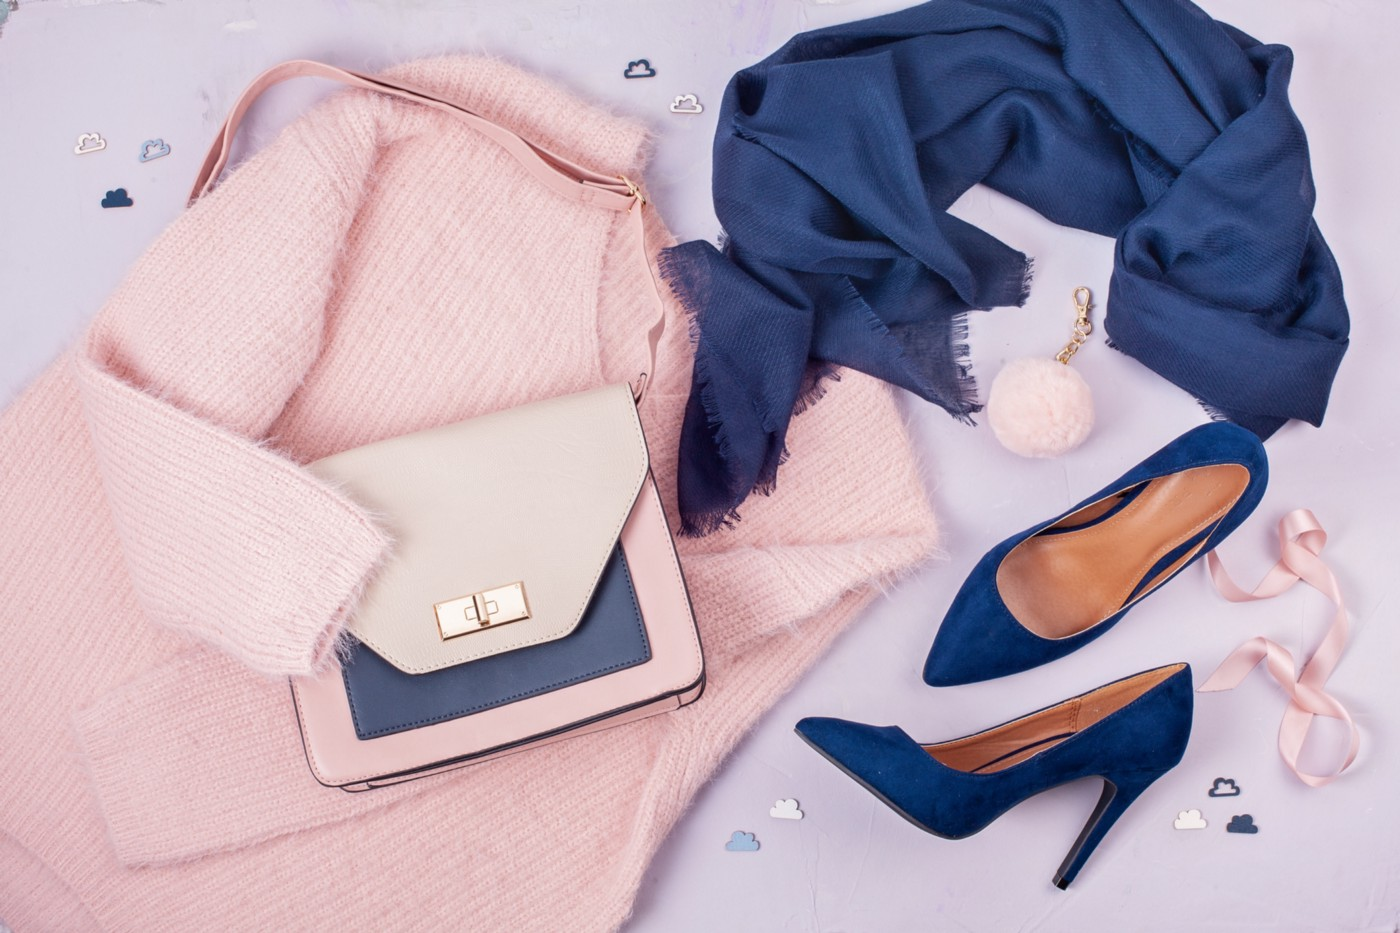 Blue high heels, pink jacket, and pink purse, viewed from above